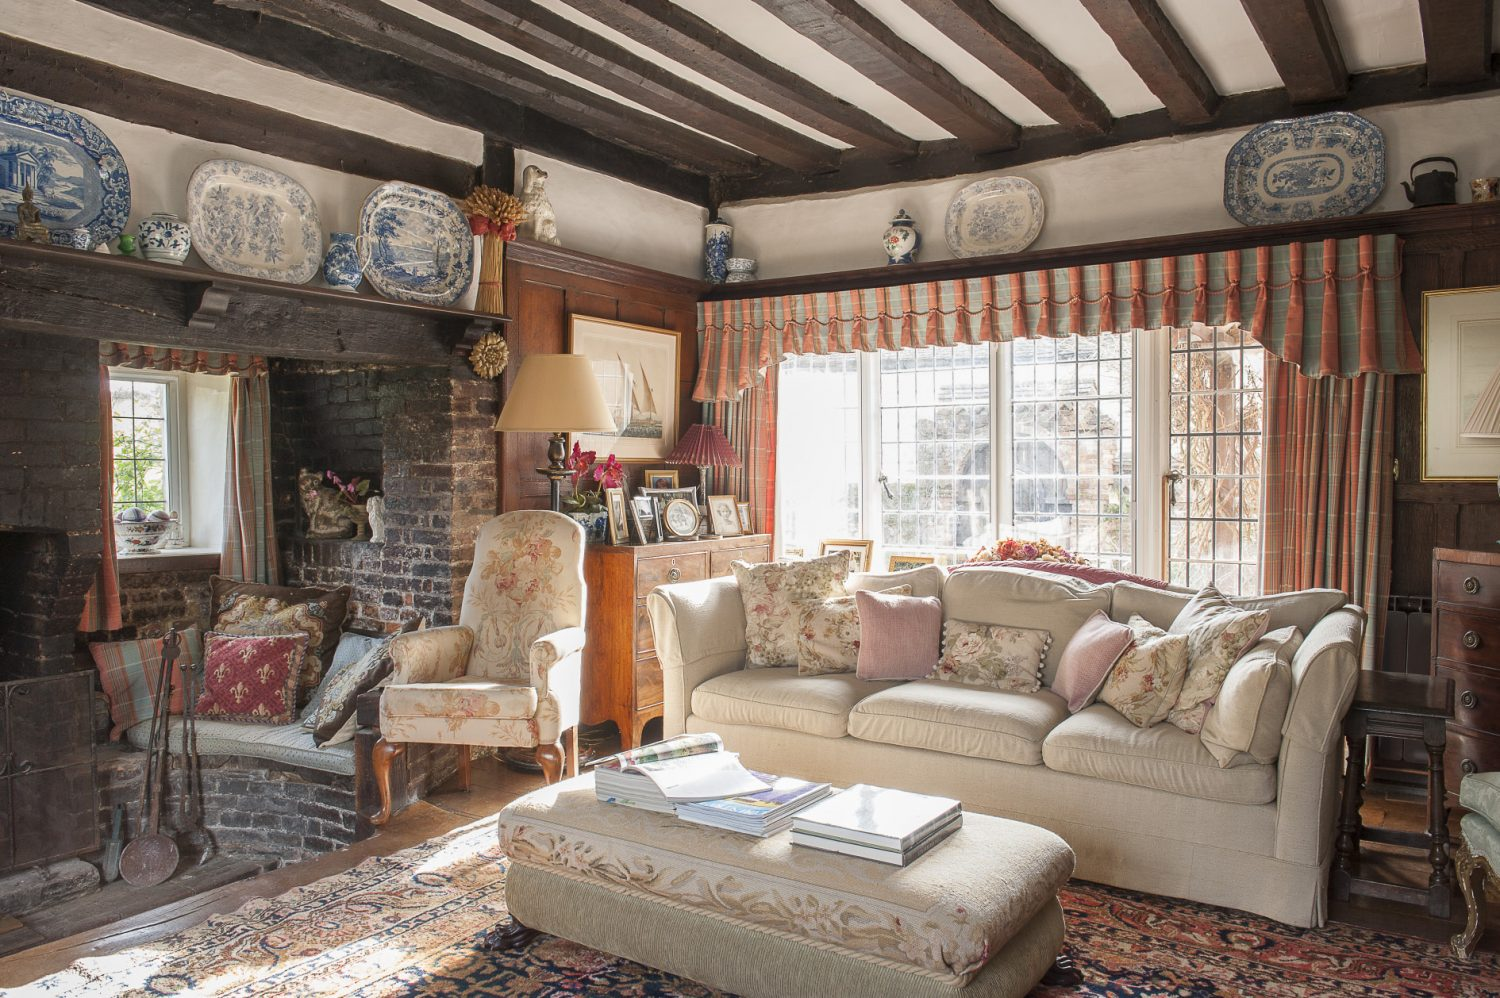 "The front reception room's sunken fireplace was apparently the only warm place to sit. ""My theory is, that the man who did all the work in the 1930s raised the floor – making the fireplace appear sunken,"" says Jane"